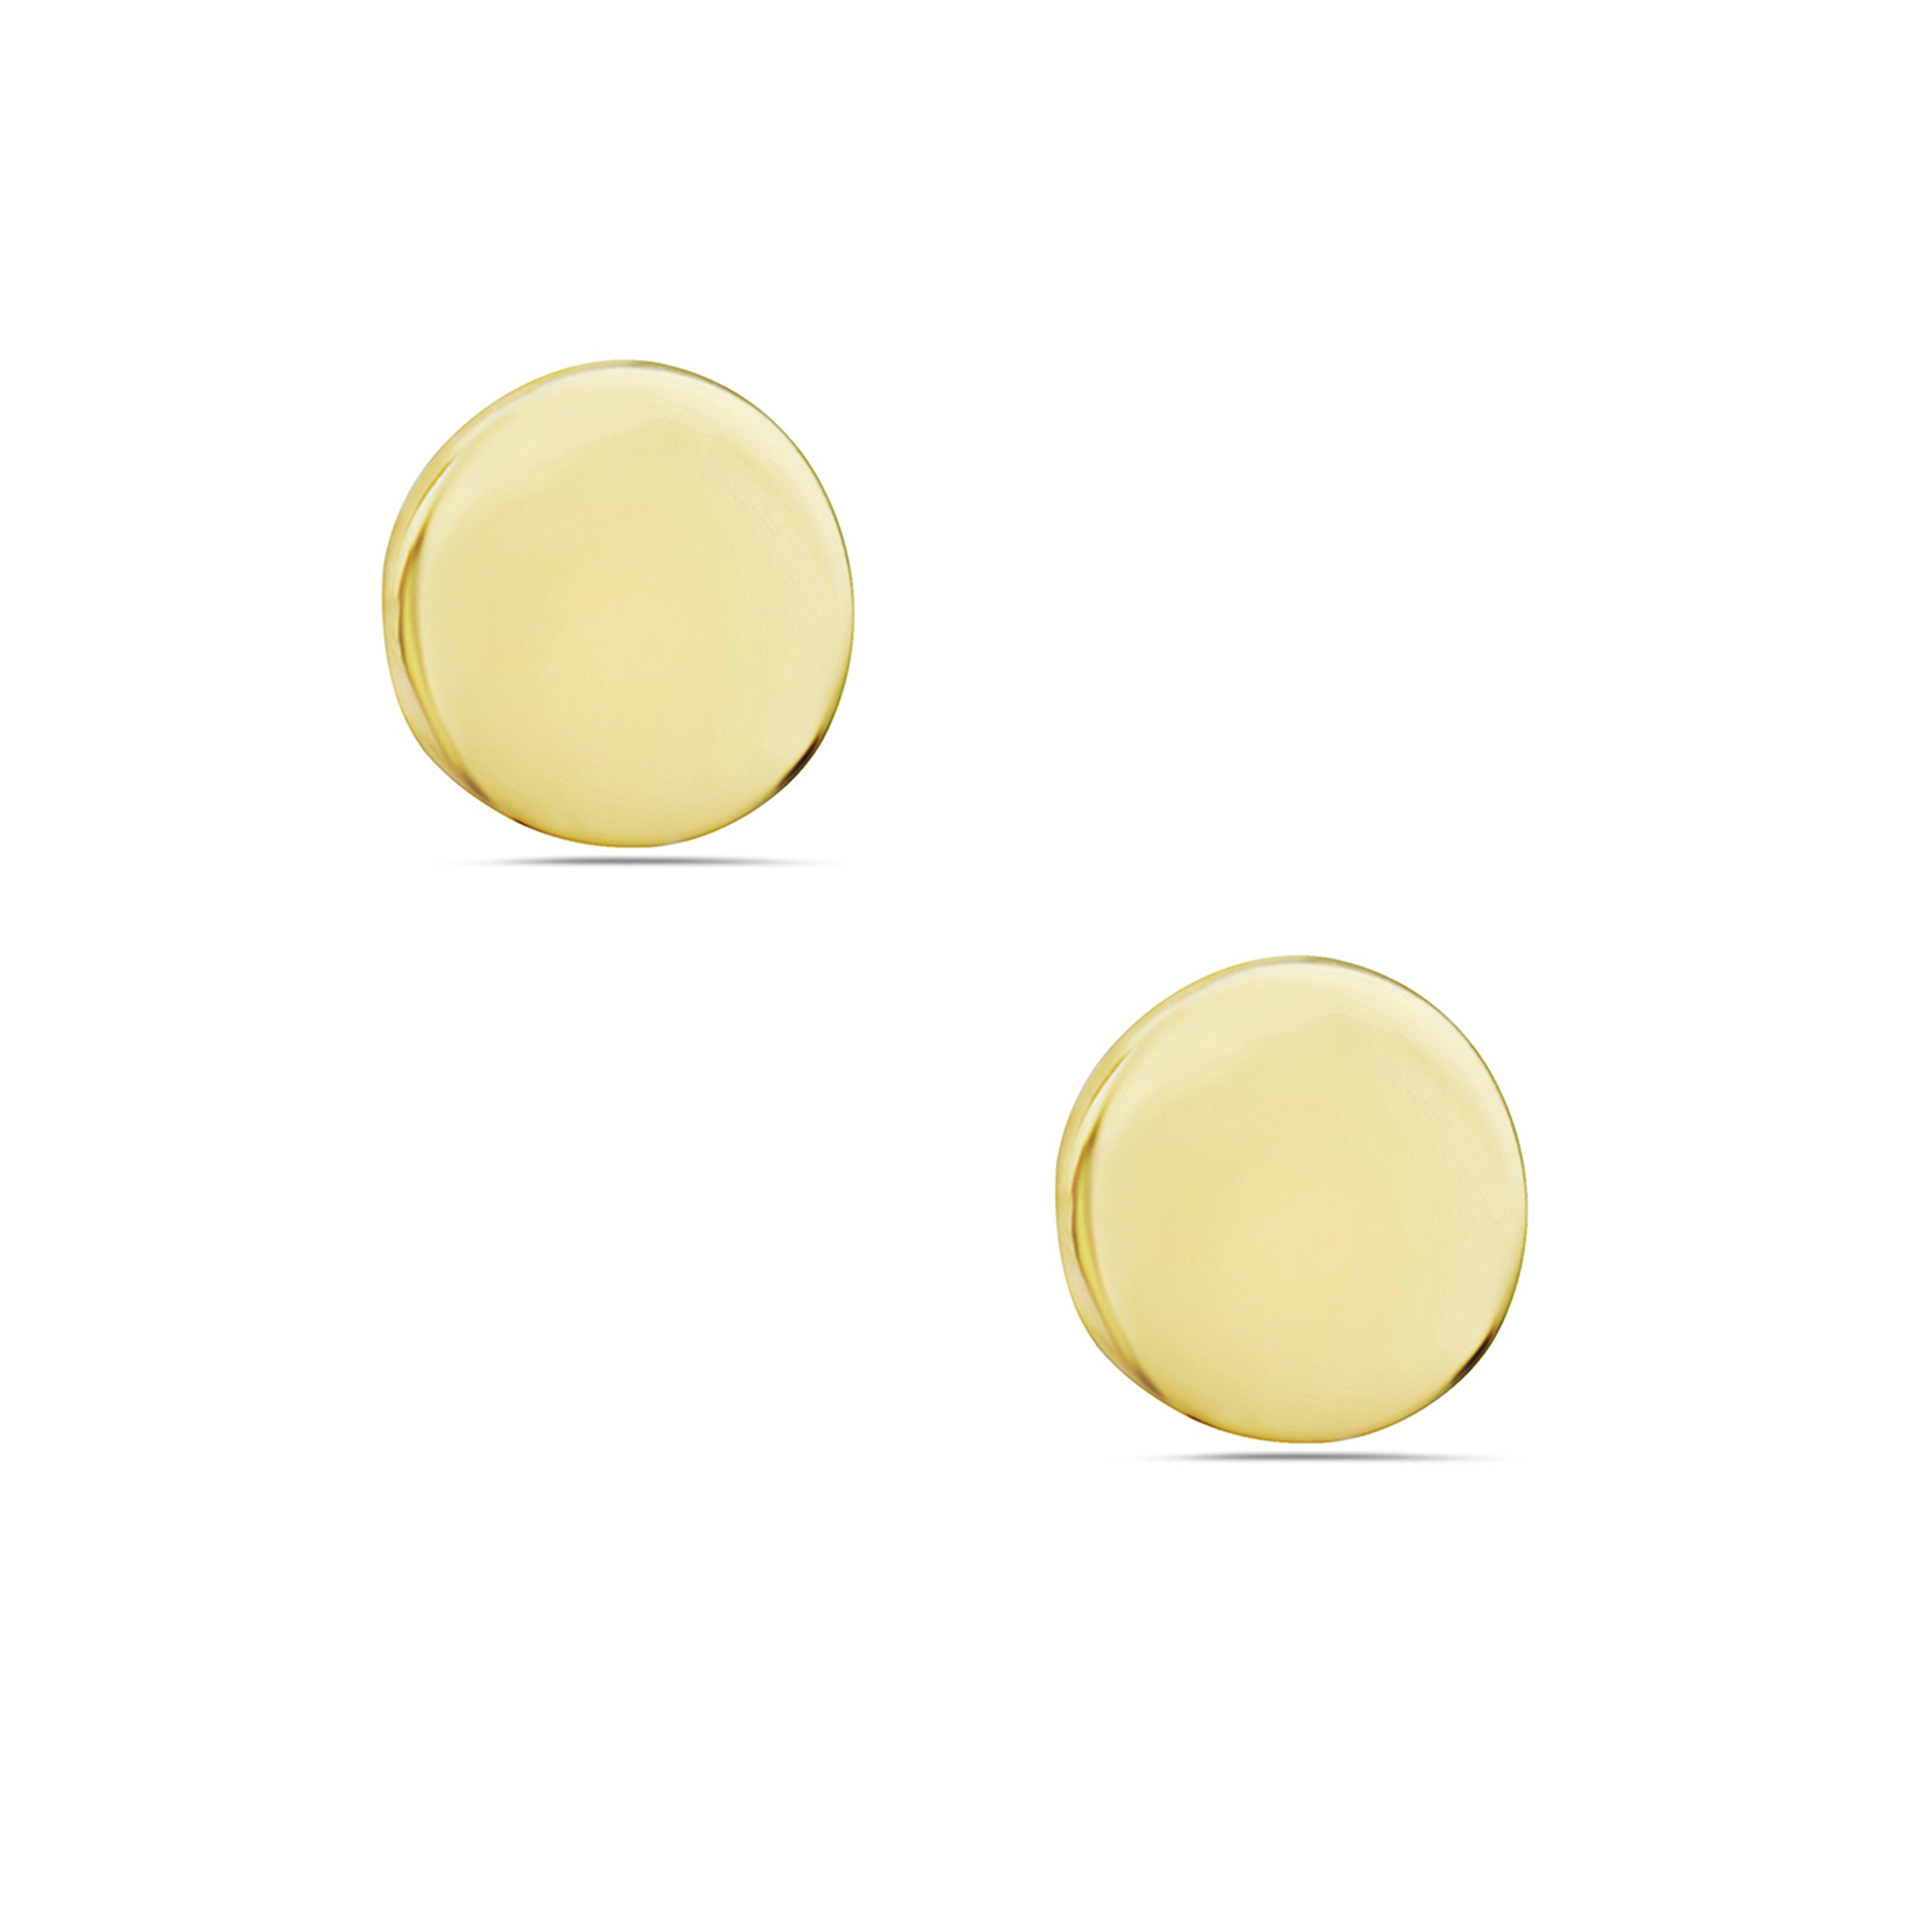 Sterling Silver Tiny Circle Stud Earrings – 100% Hypoallergenic & Allergy Free Jewelry (Gold)